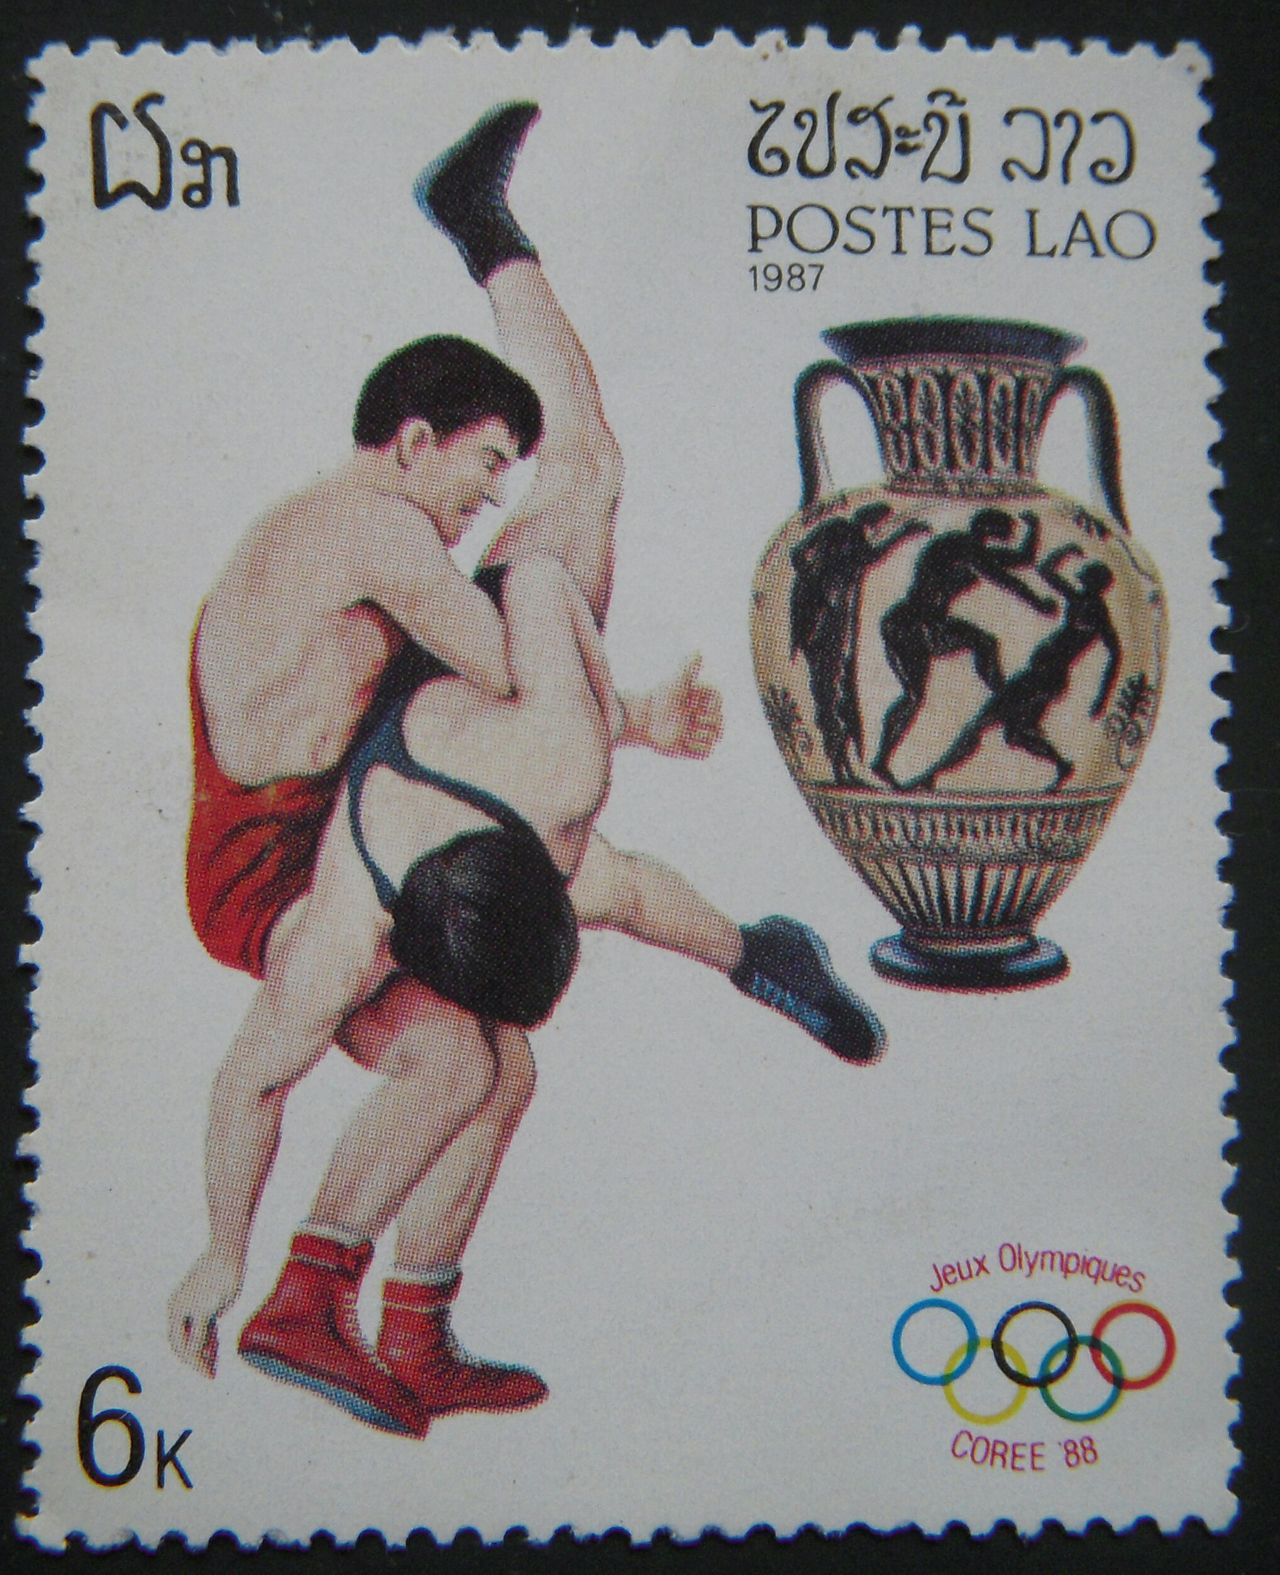 Coree88 Olimpic Games  Philately Stamp Overprint Communication Sports Event  Collectibles People Paper Collections Commemorate Old-fashioned Postage Stamps Business Finance And Industry Gift History